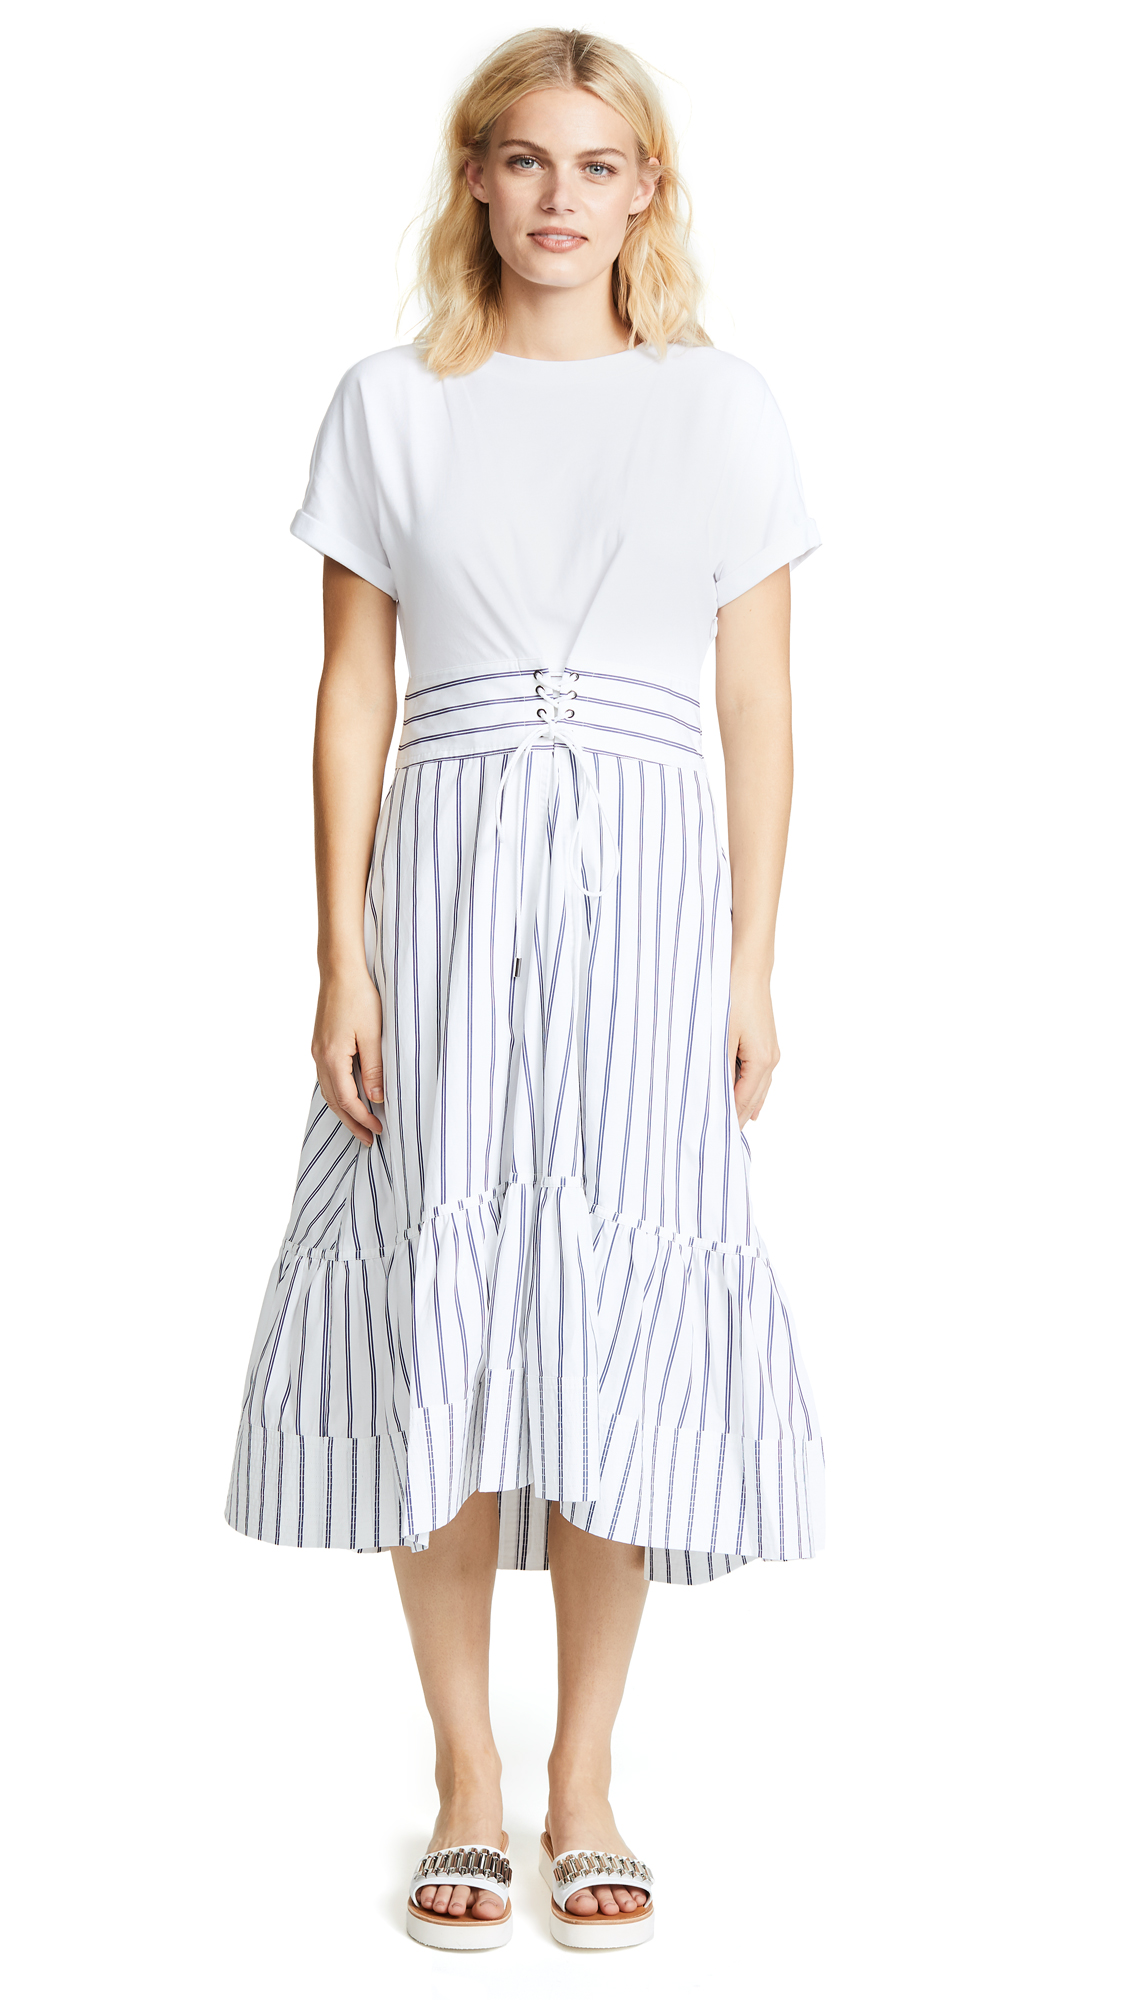 3.1 Phillip Lim Short Sleeve Dress With Corset Waist In White Navy ... 453ceb76a